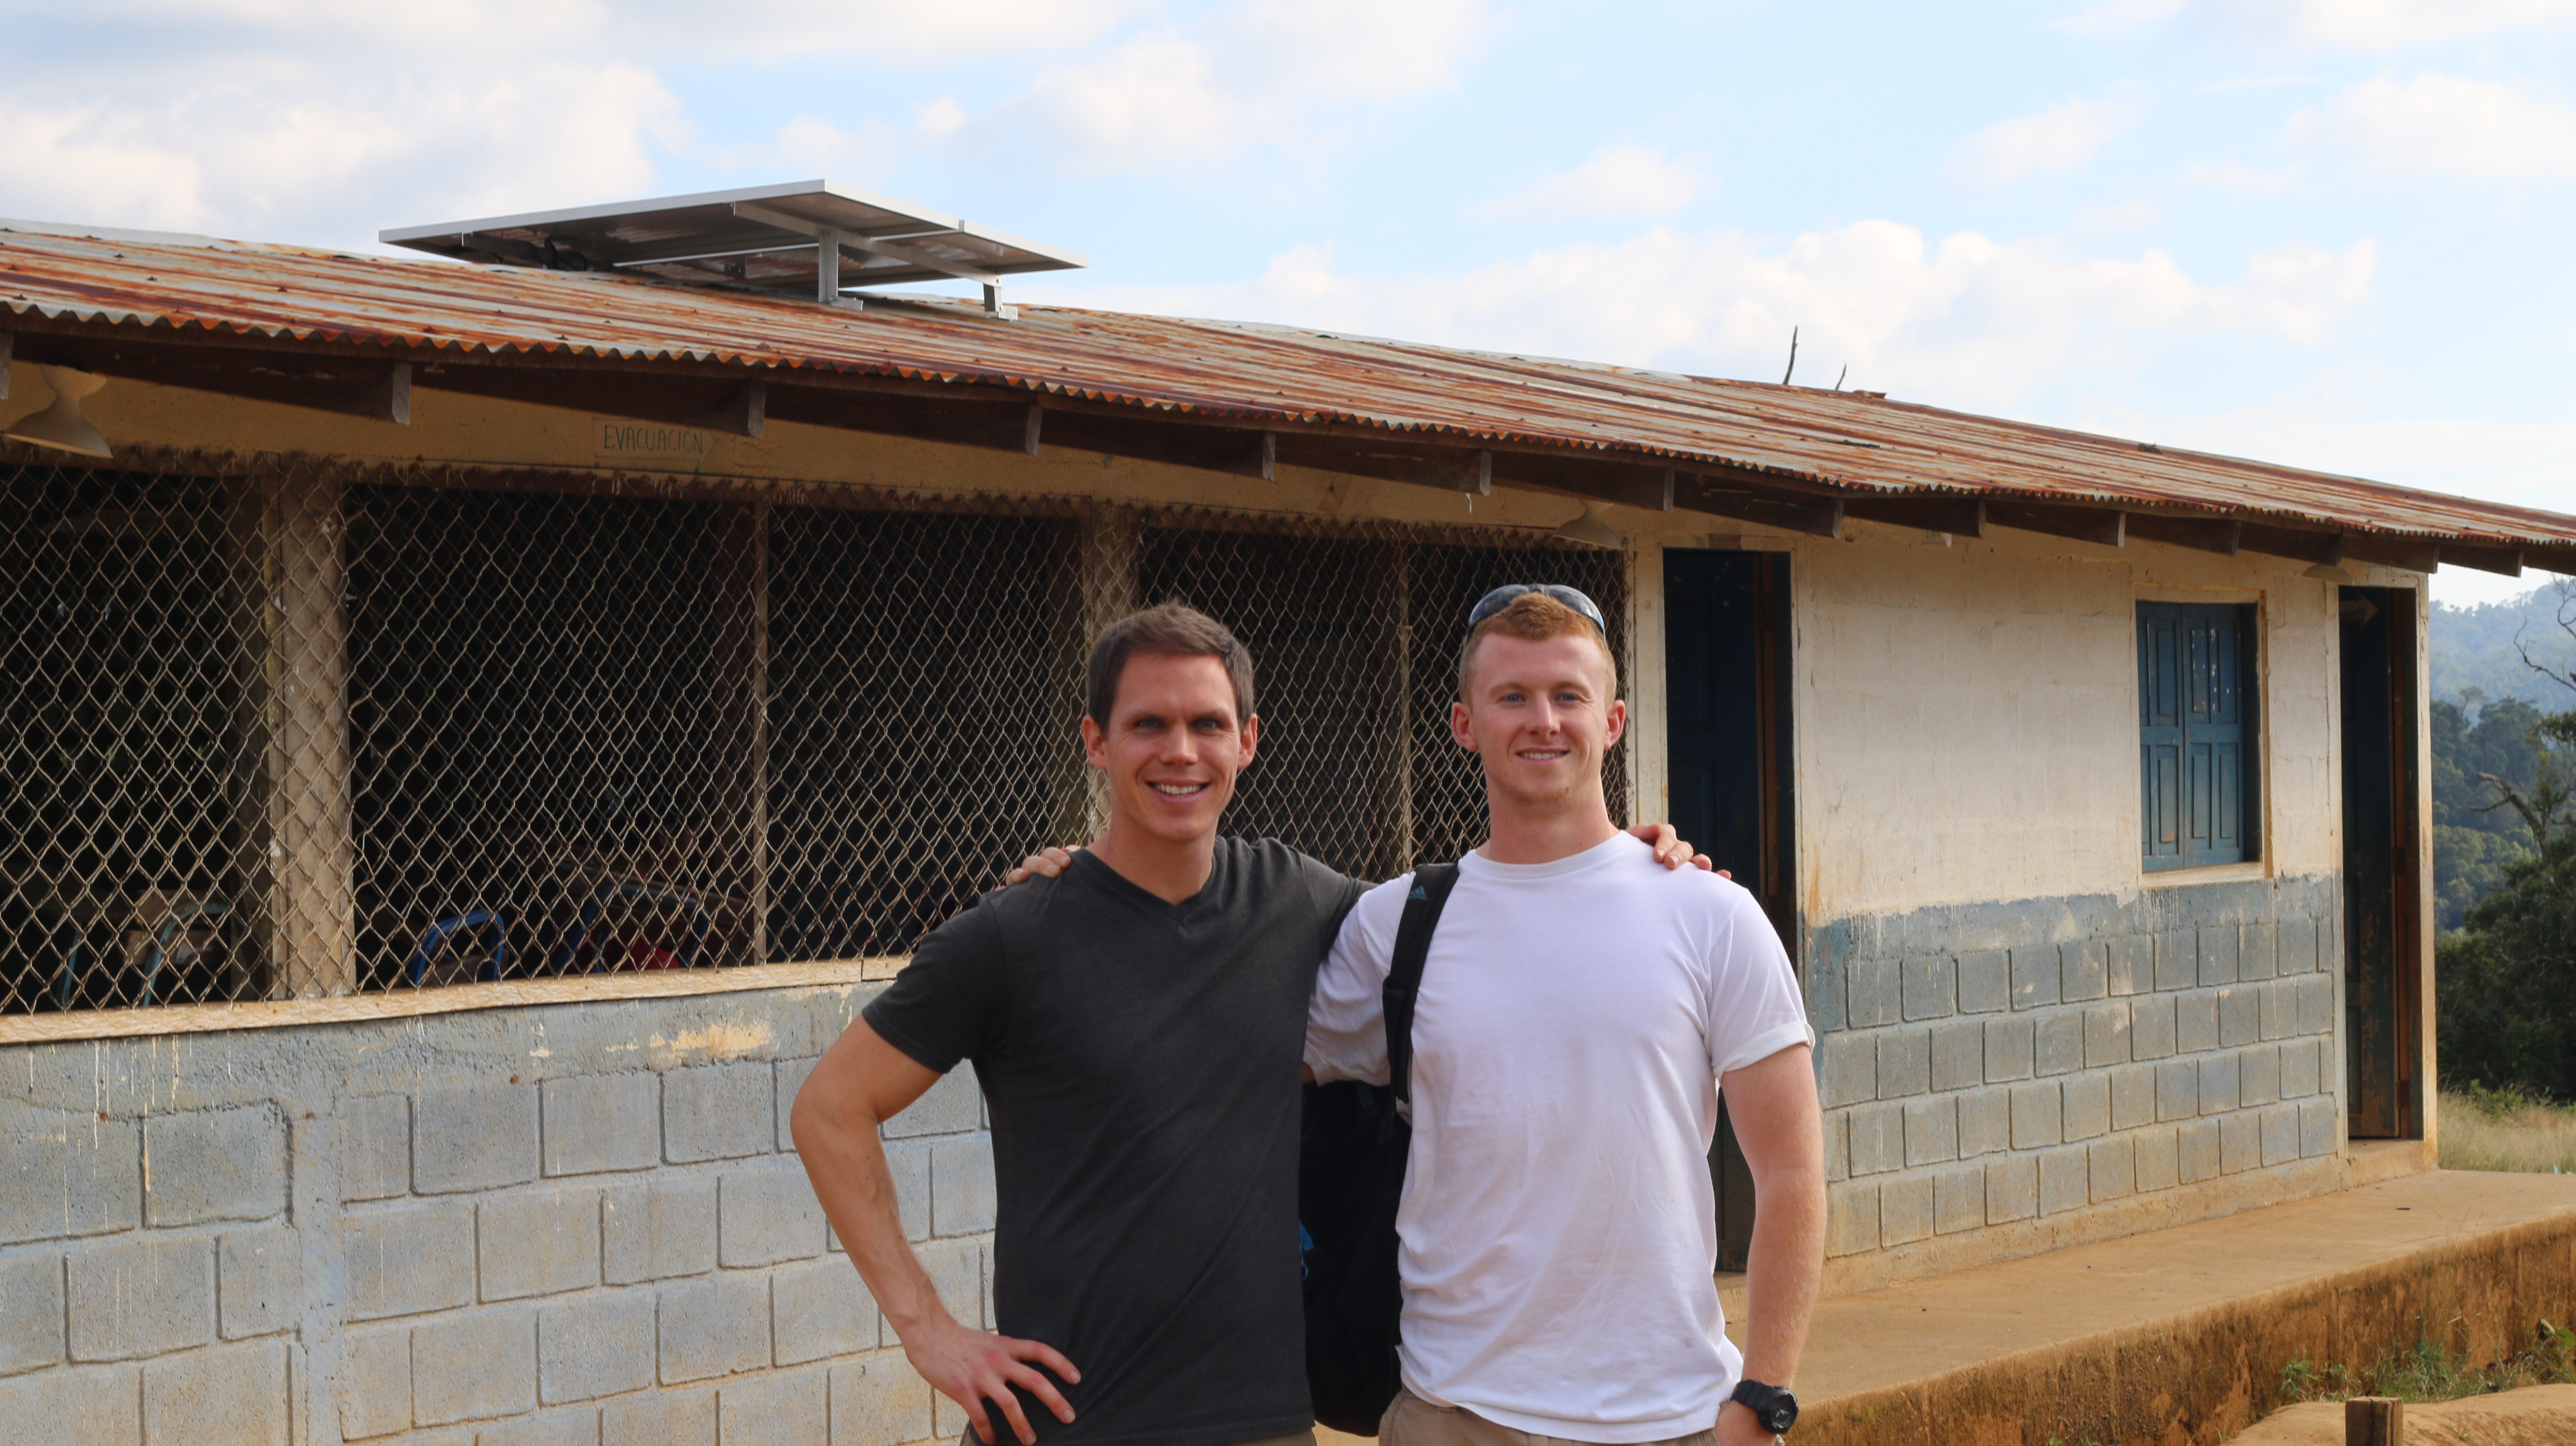 Co-founder Steven Thomsen and Project Development Coordinator Charlie Egan stand in front of USI's first completed project on a primary school in Matagalpa, Nicaragua.